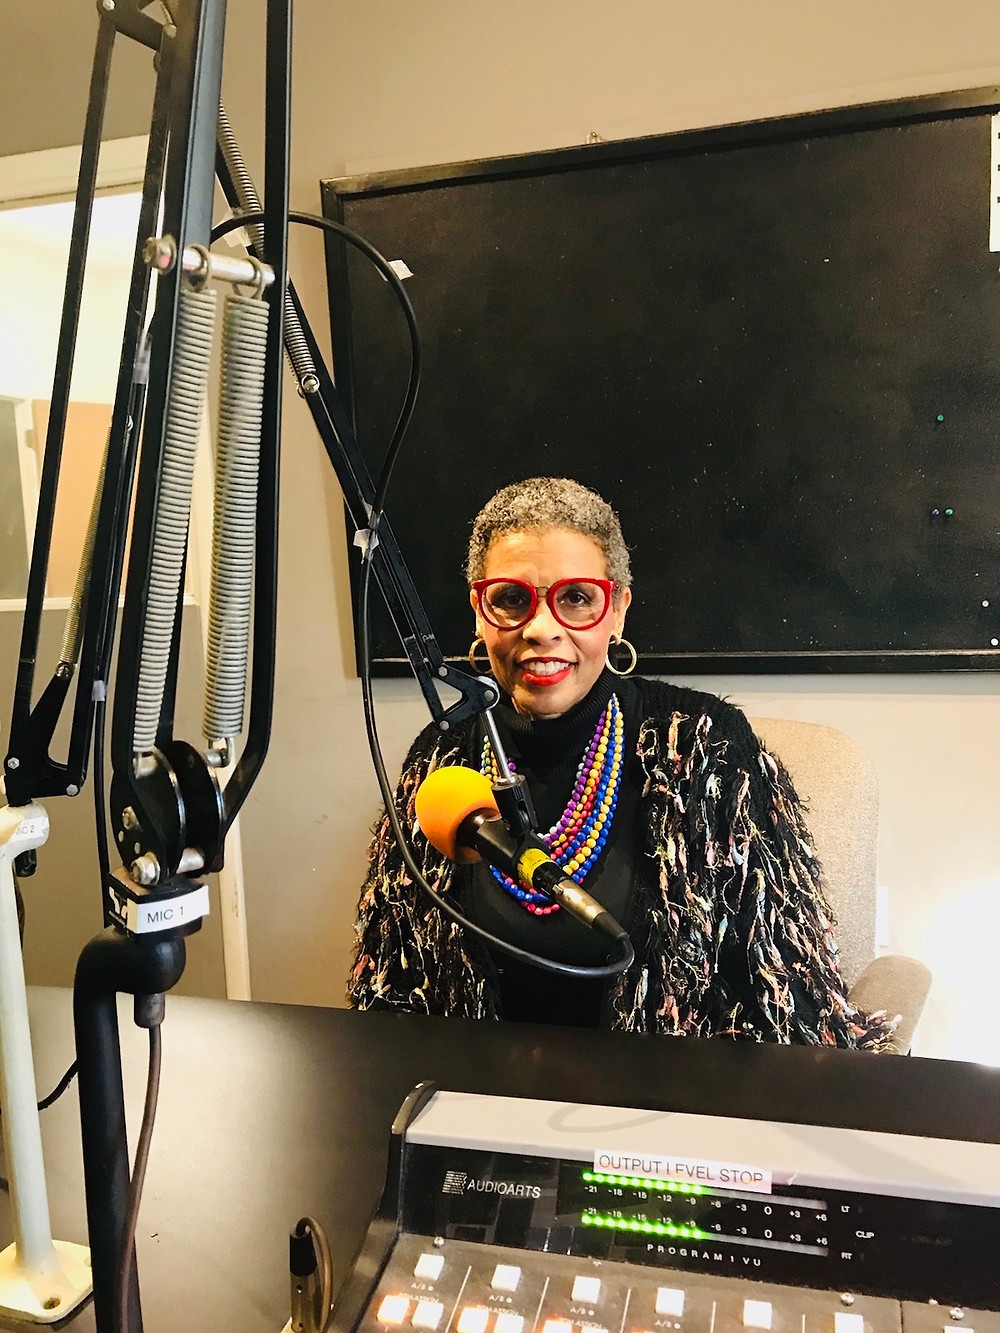 Jannie Cotton on Arkansas Talks KABF 88.3 FM